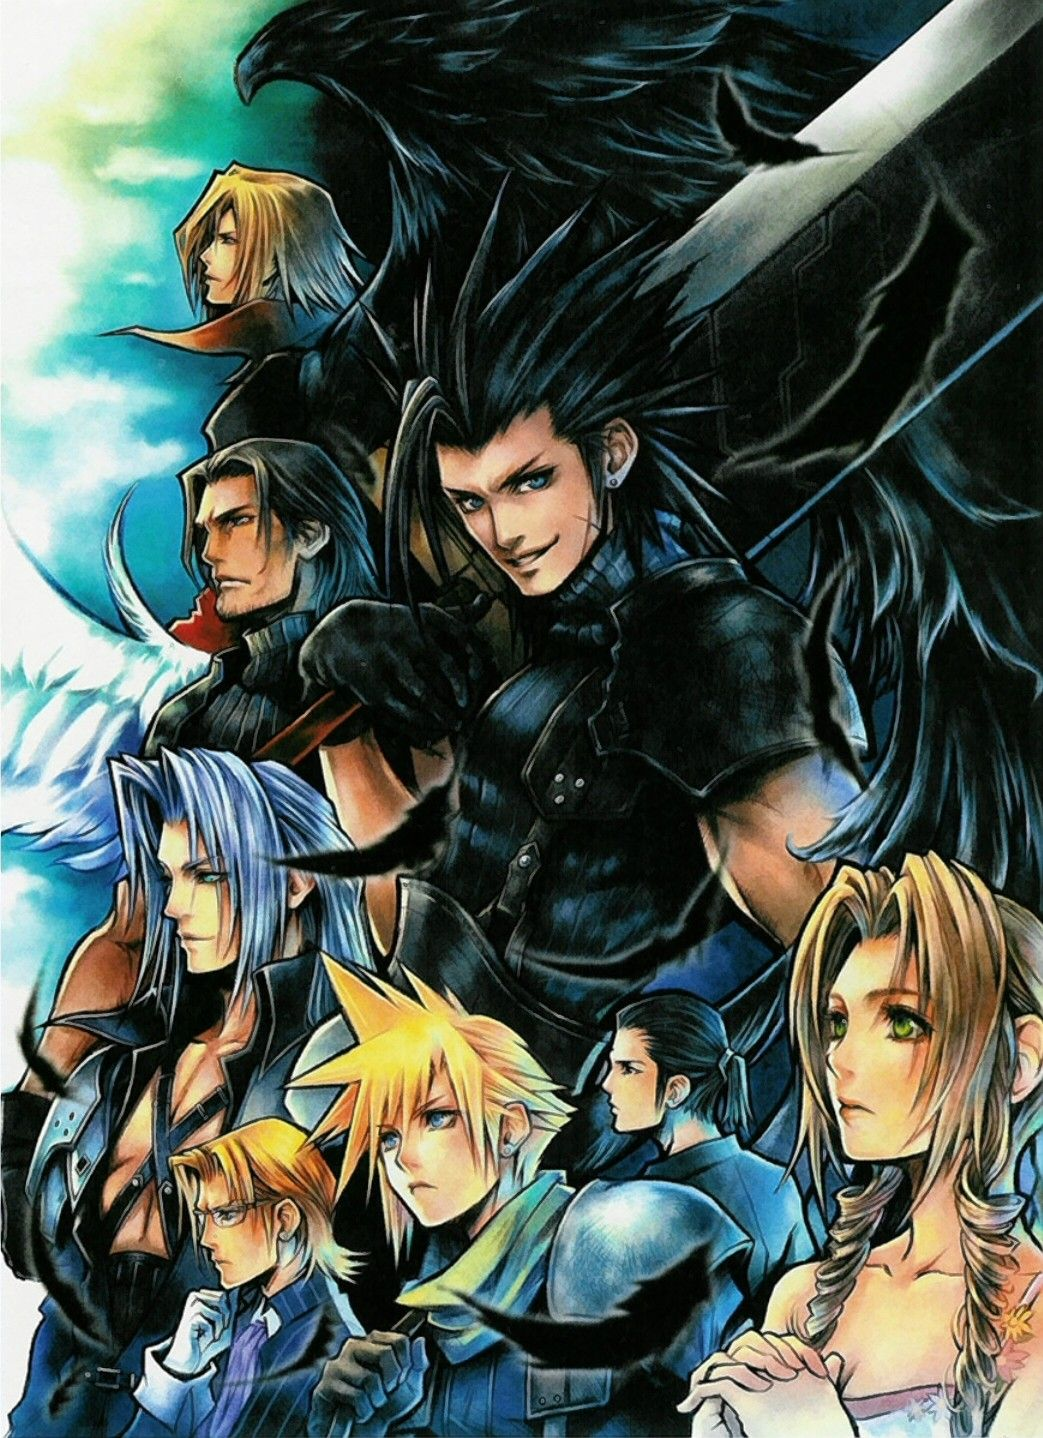 Final Fantasy Vii Mobile Wallpaper 32385 Zerochan Anime Image